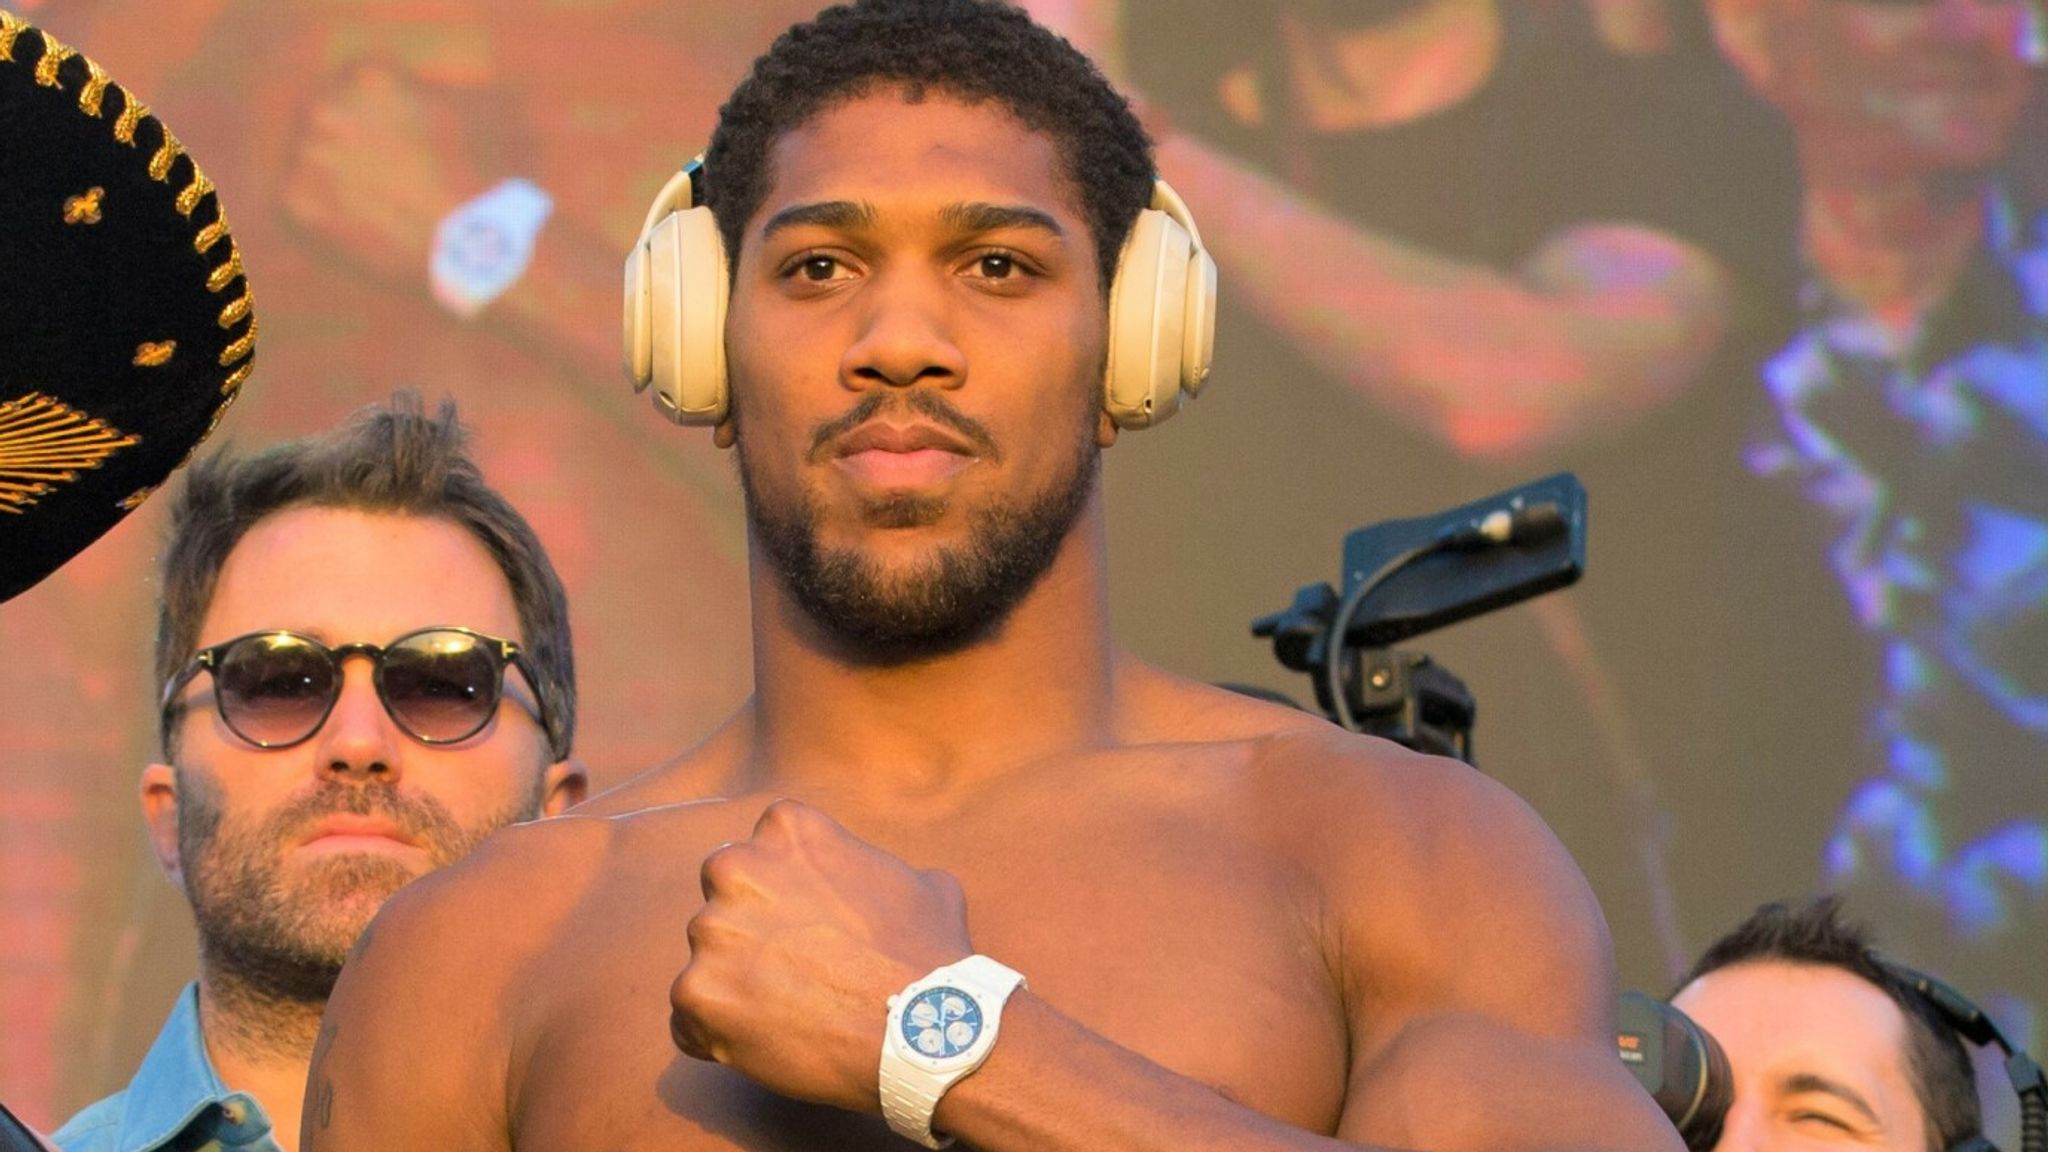 Anthony Joshua And Jay Z Will Smith Movie Premiere And Anthony Feared Jay Z Here's Why!